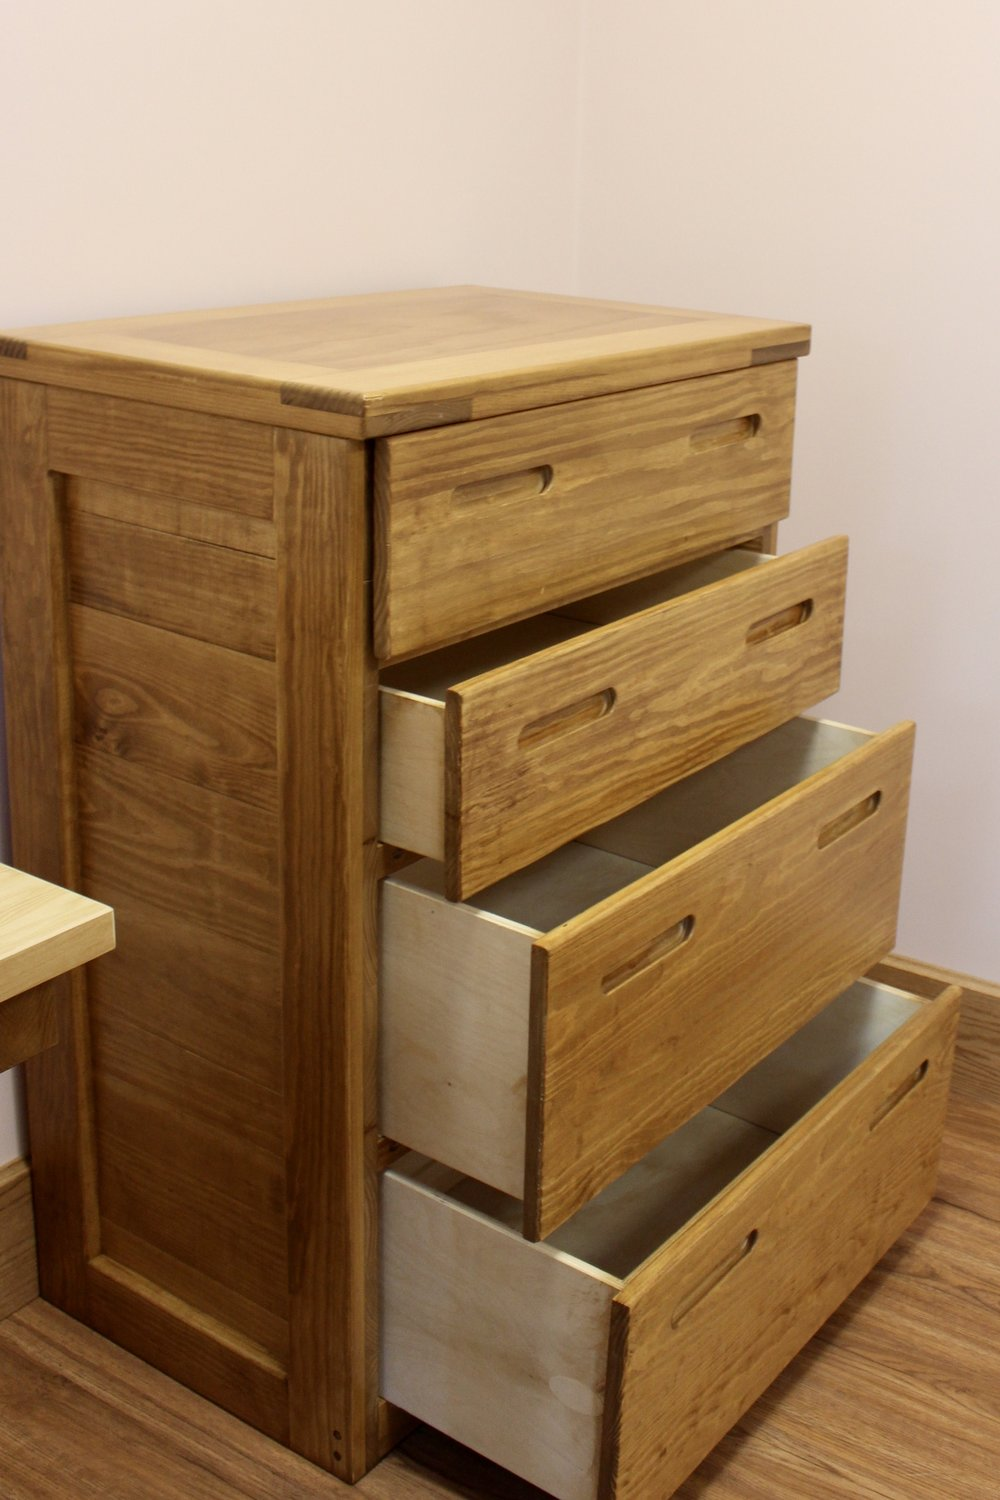 Classic Bureau with Wooden Drawer Box - No Metal Hardware